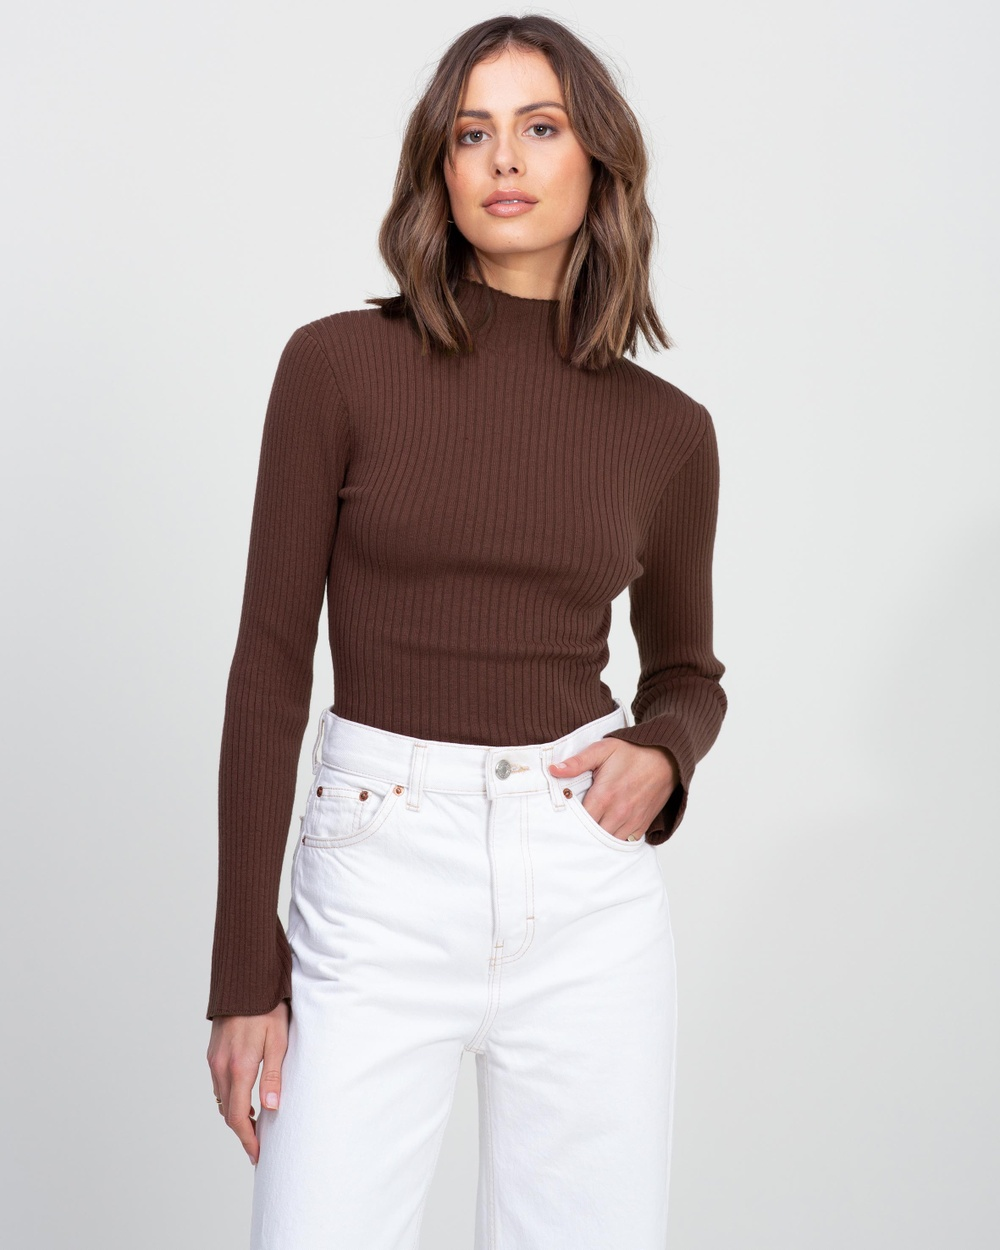 AERE Ribbed Knit Turtle Neck Sweater Jumpers & Cardigans Chocolate